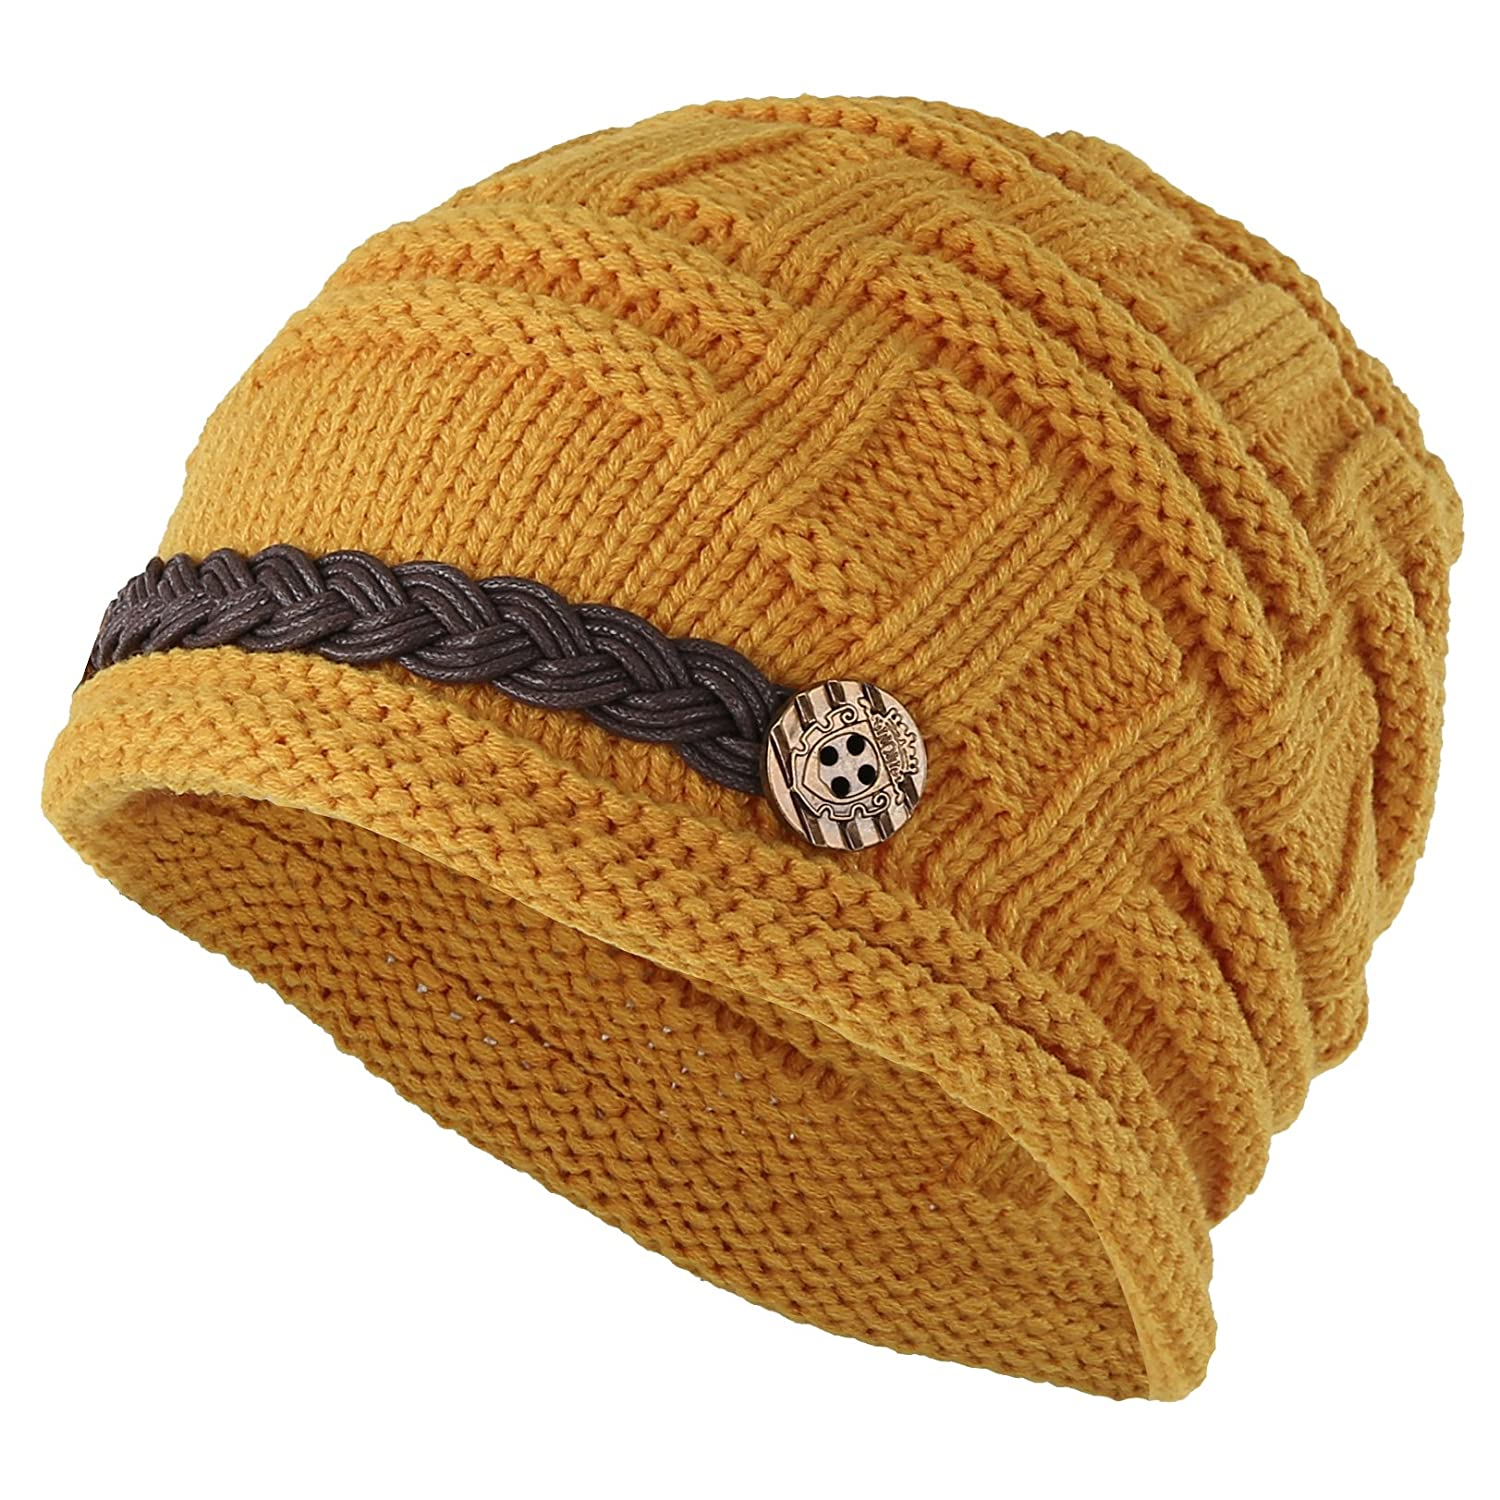 7e1e6d27ef20 ELACUCOS Women Winter Beanie Cabled Checker Pattern Knit Hat Button Strap  Cap EHA0004